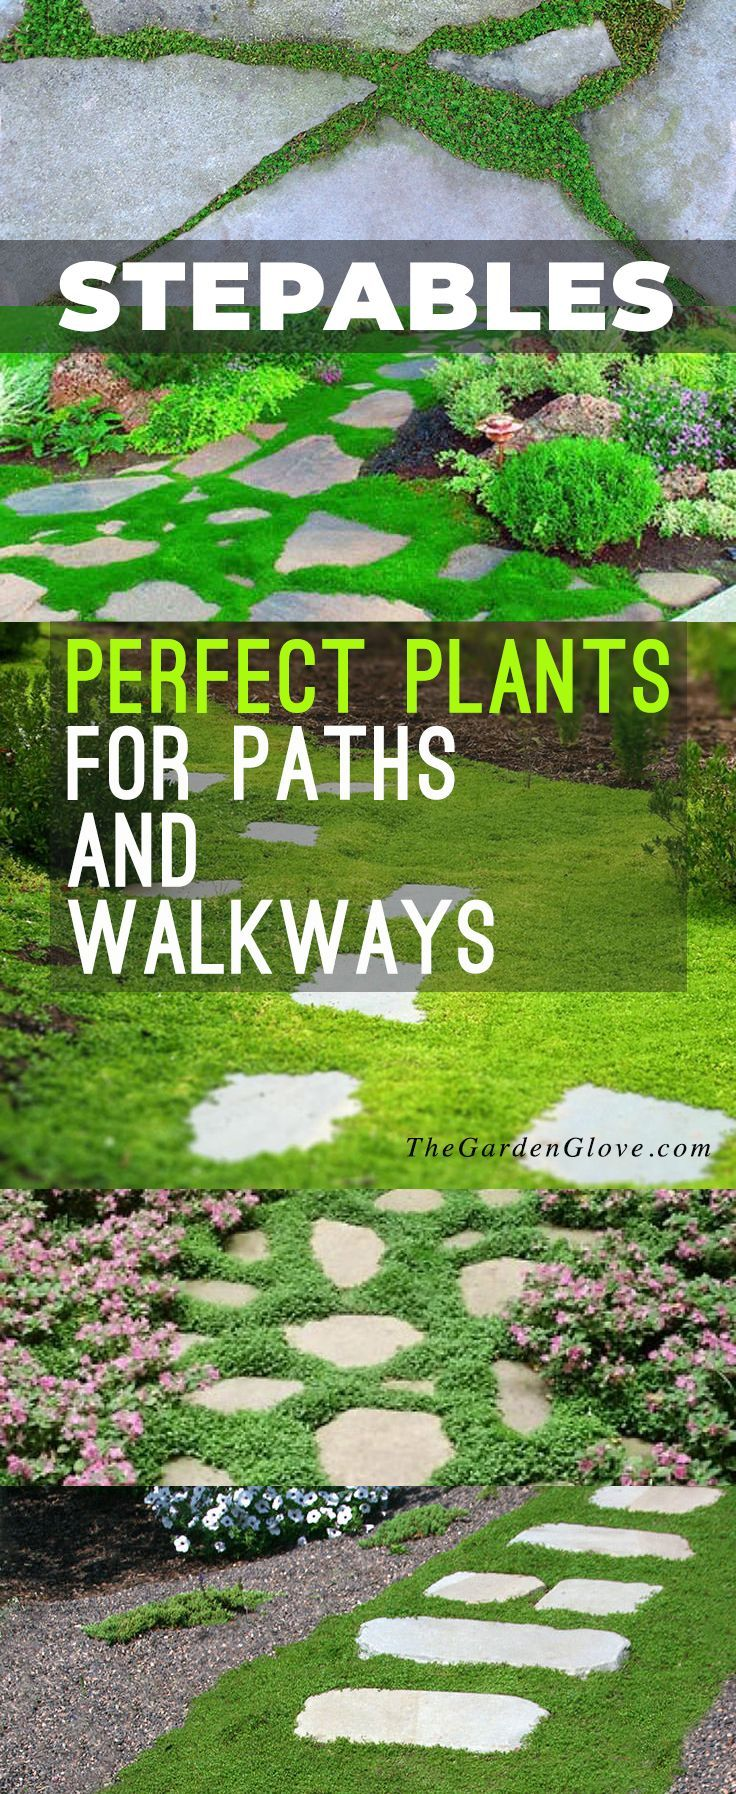 Diy garden ideas pinterest  Stepables Perfect Plants for Paths and Walkways  DIY Gardening